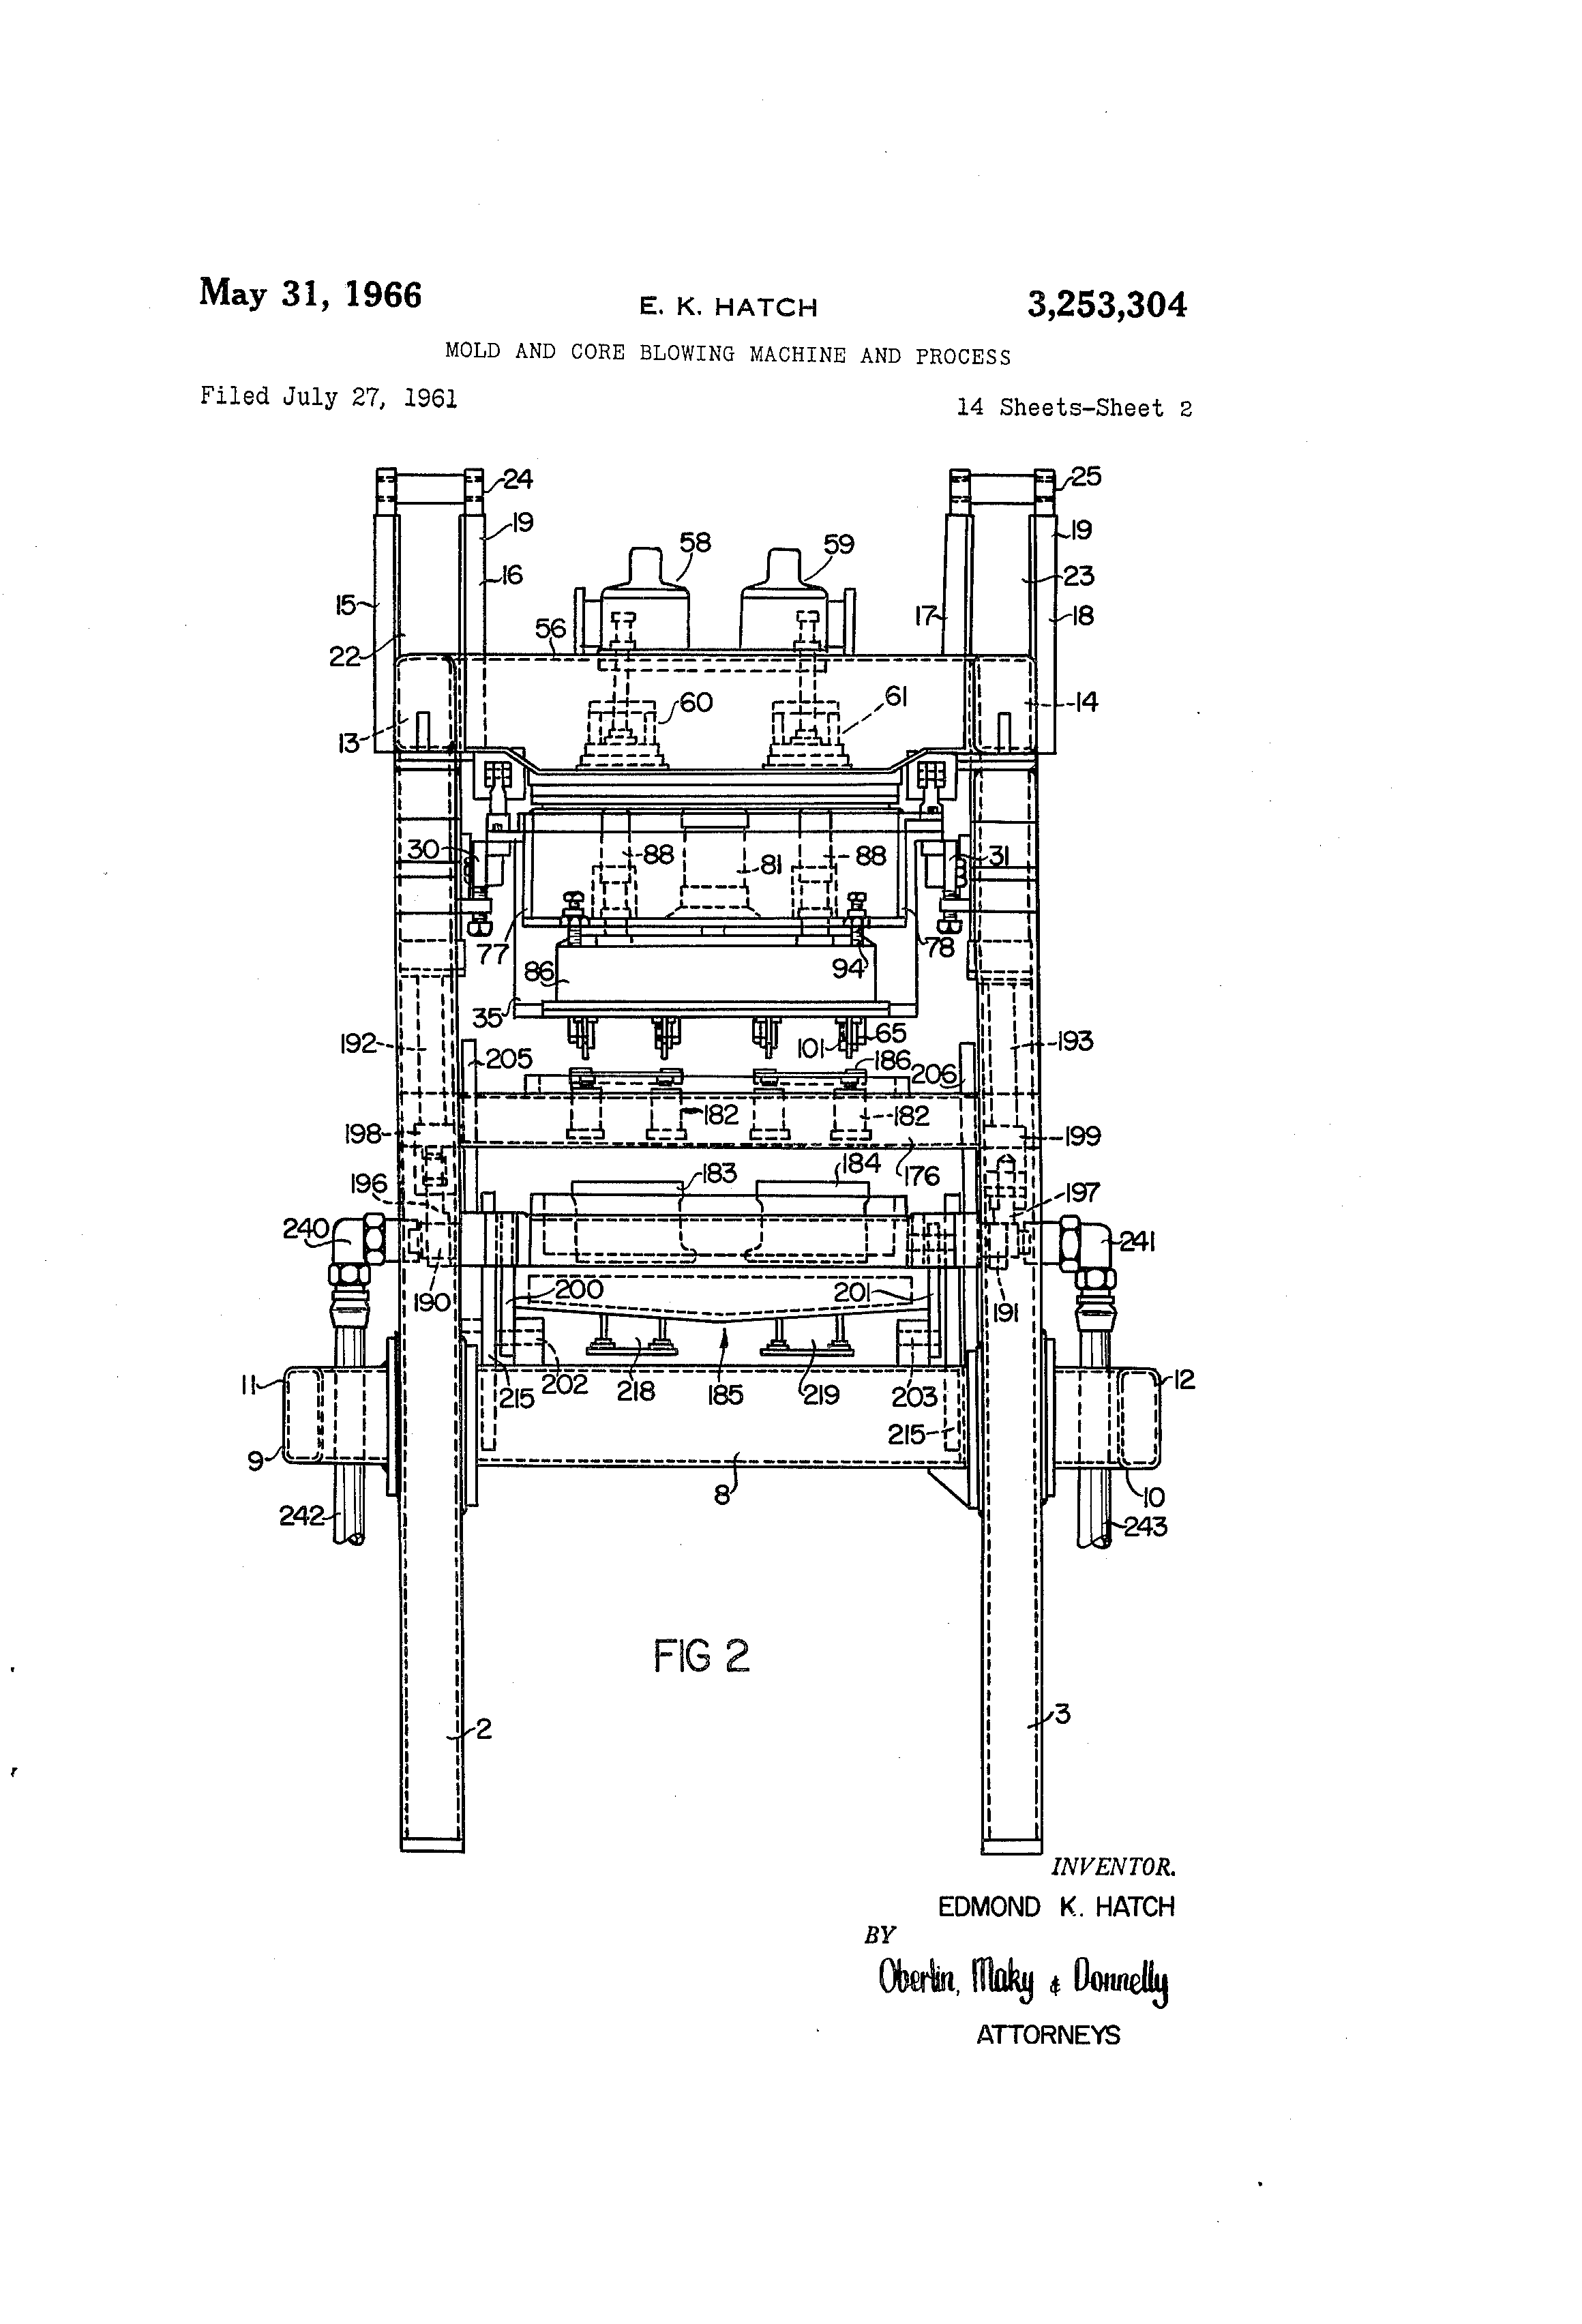 US3253304 1 patent us3253304 mold and core blowing machine and process  at eliteediting.co